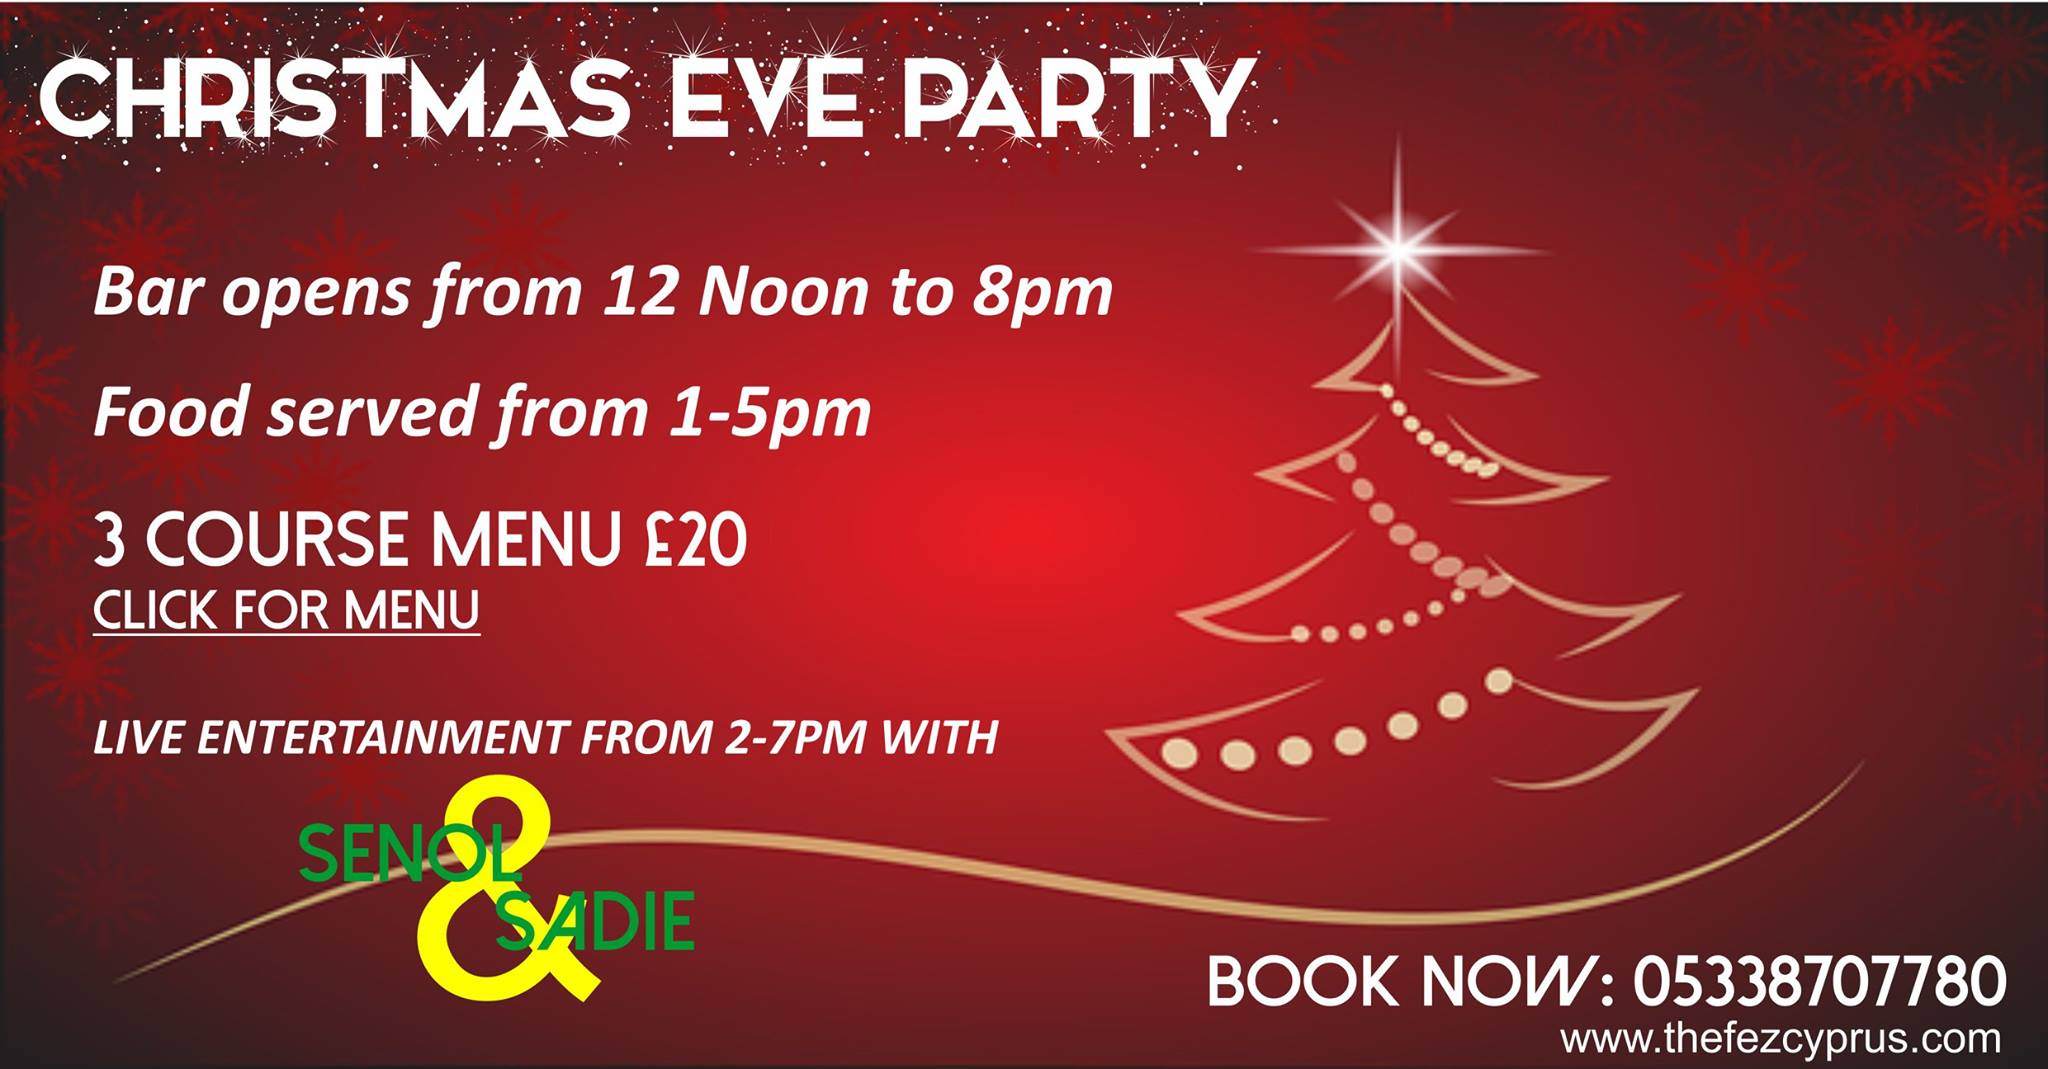 Christmas Eve with a three course menu at the Fez